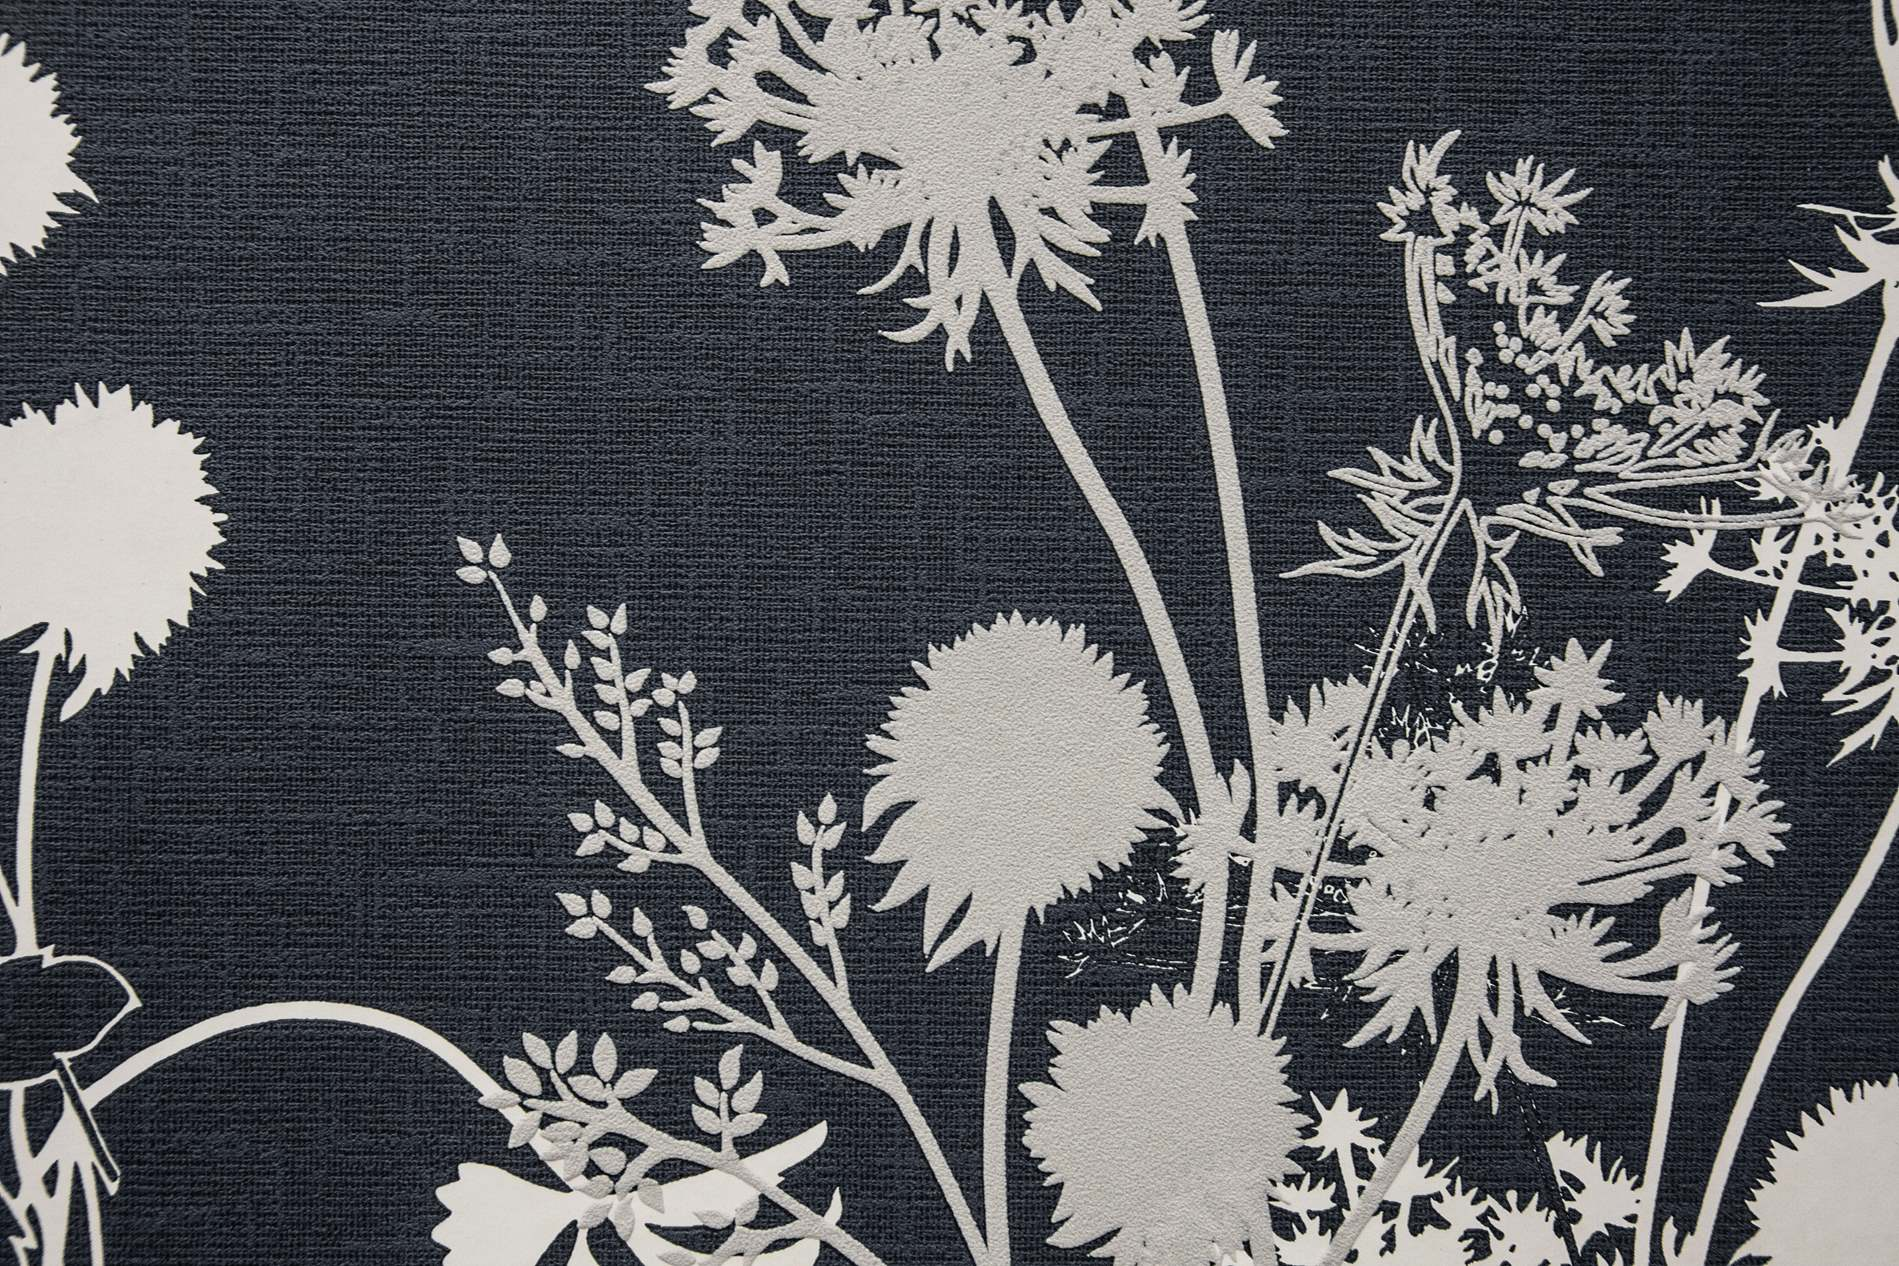 Grey Vintage Fabric Texture With Flower Design - PhotoHDX for White Fabric Texture Design  45gtk